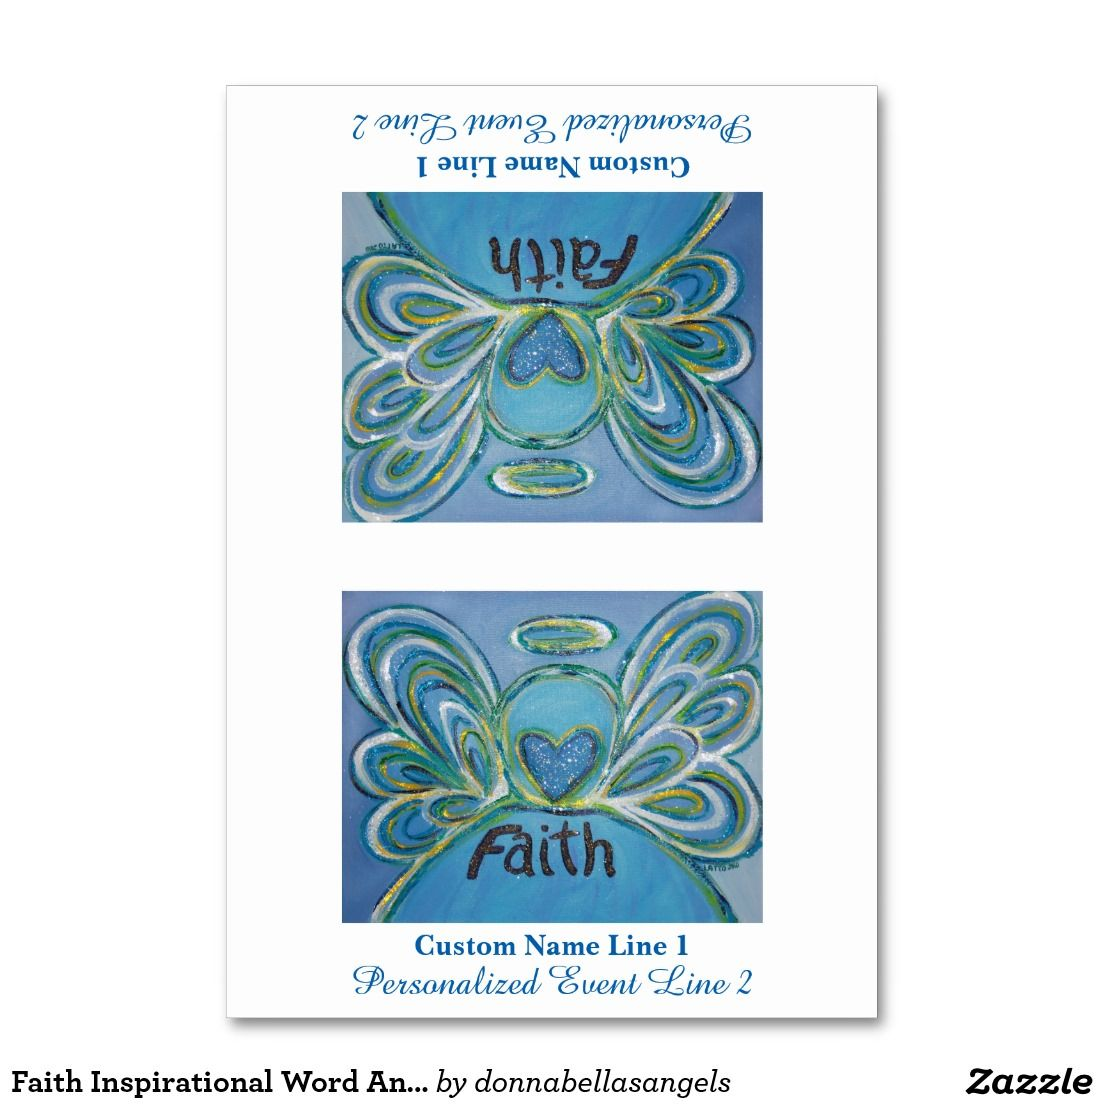 """#Faith Inspirational Word Angel Table Tent Card - The word for """"Faith"""" is painted in shades of soft blues with yellow and green accents. The acrylic painting has a textural contrast and sparkle from a light layer of glitter. Name and/or event information will appear on both sides of the card once folded into a table tent. Create your own unique one-of-a-kind table tent card design by customizing these template inspirational word angel table cards for your wedding or party event!"""